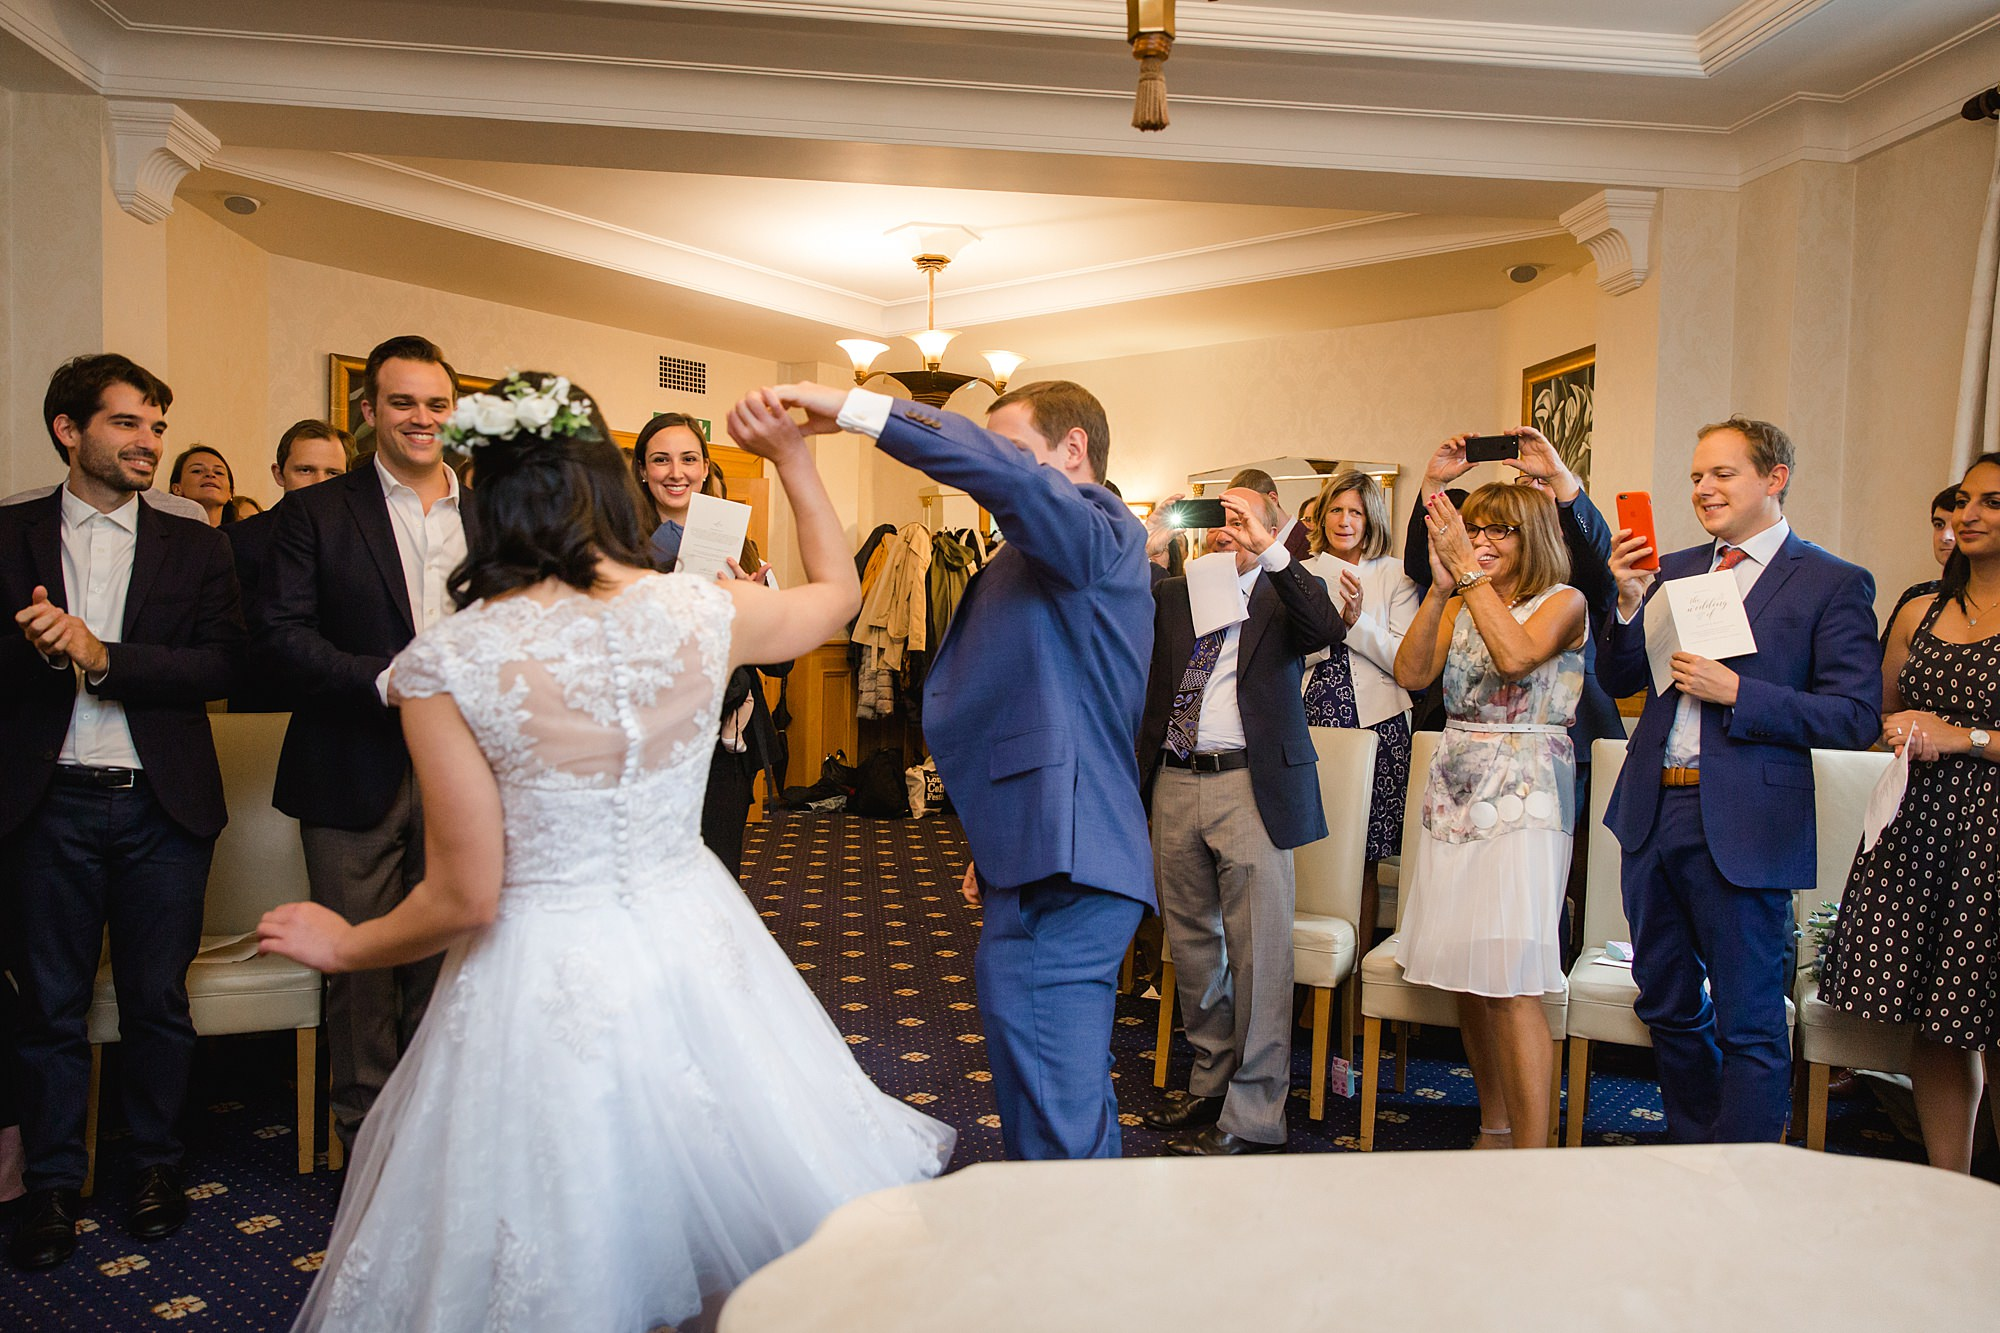 Wandsworth pub wedding groom and bride dancing